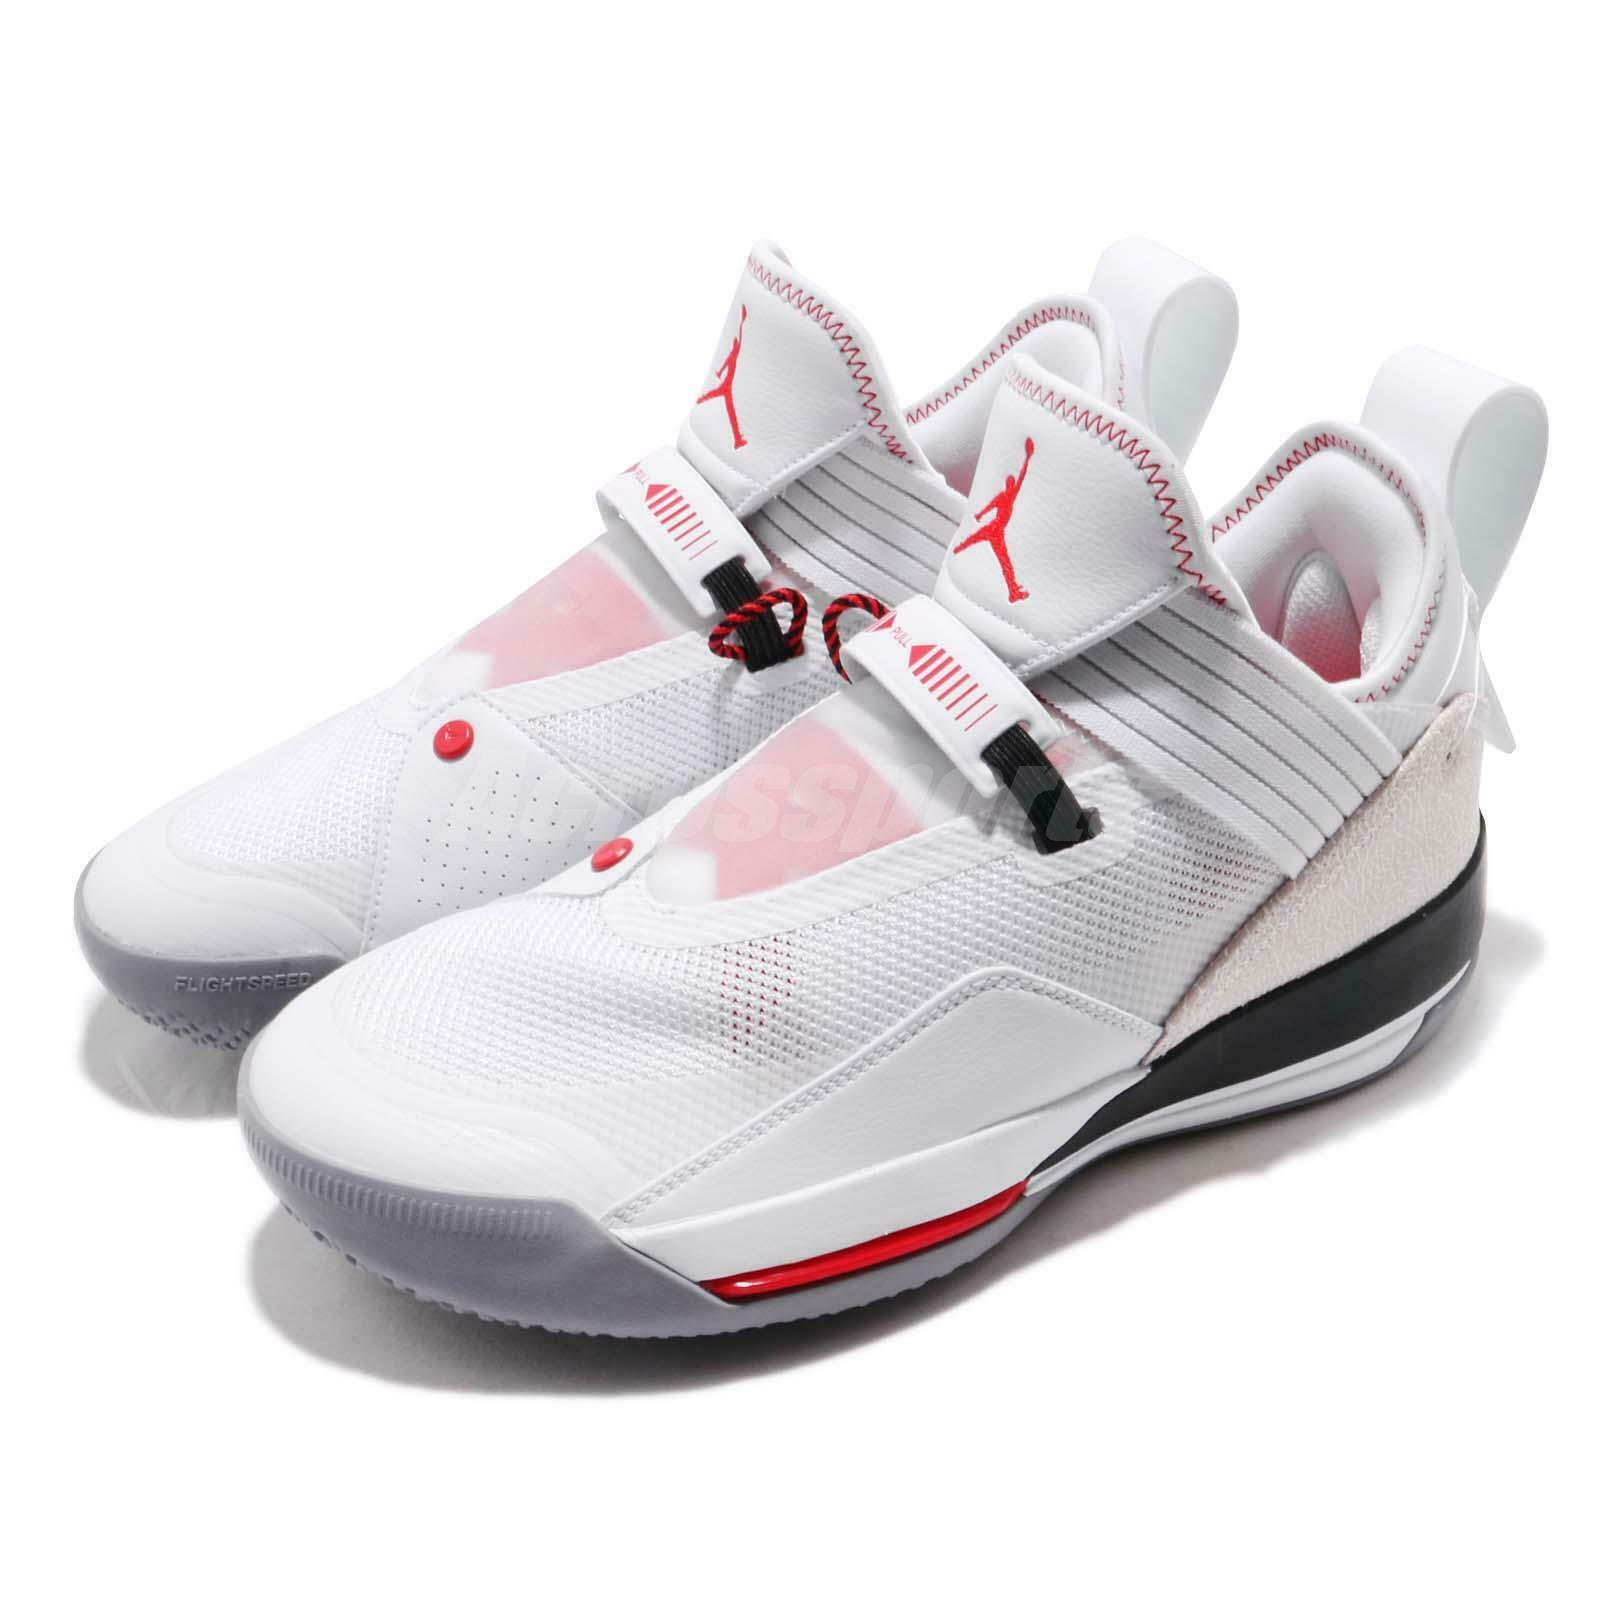 Nike Air Air Air Jordan XXXIII SE PF 33 blanco Gym rojo Men Basketball zapatos CD9561-106 b49a11